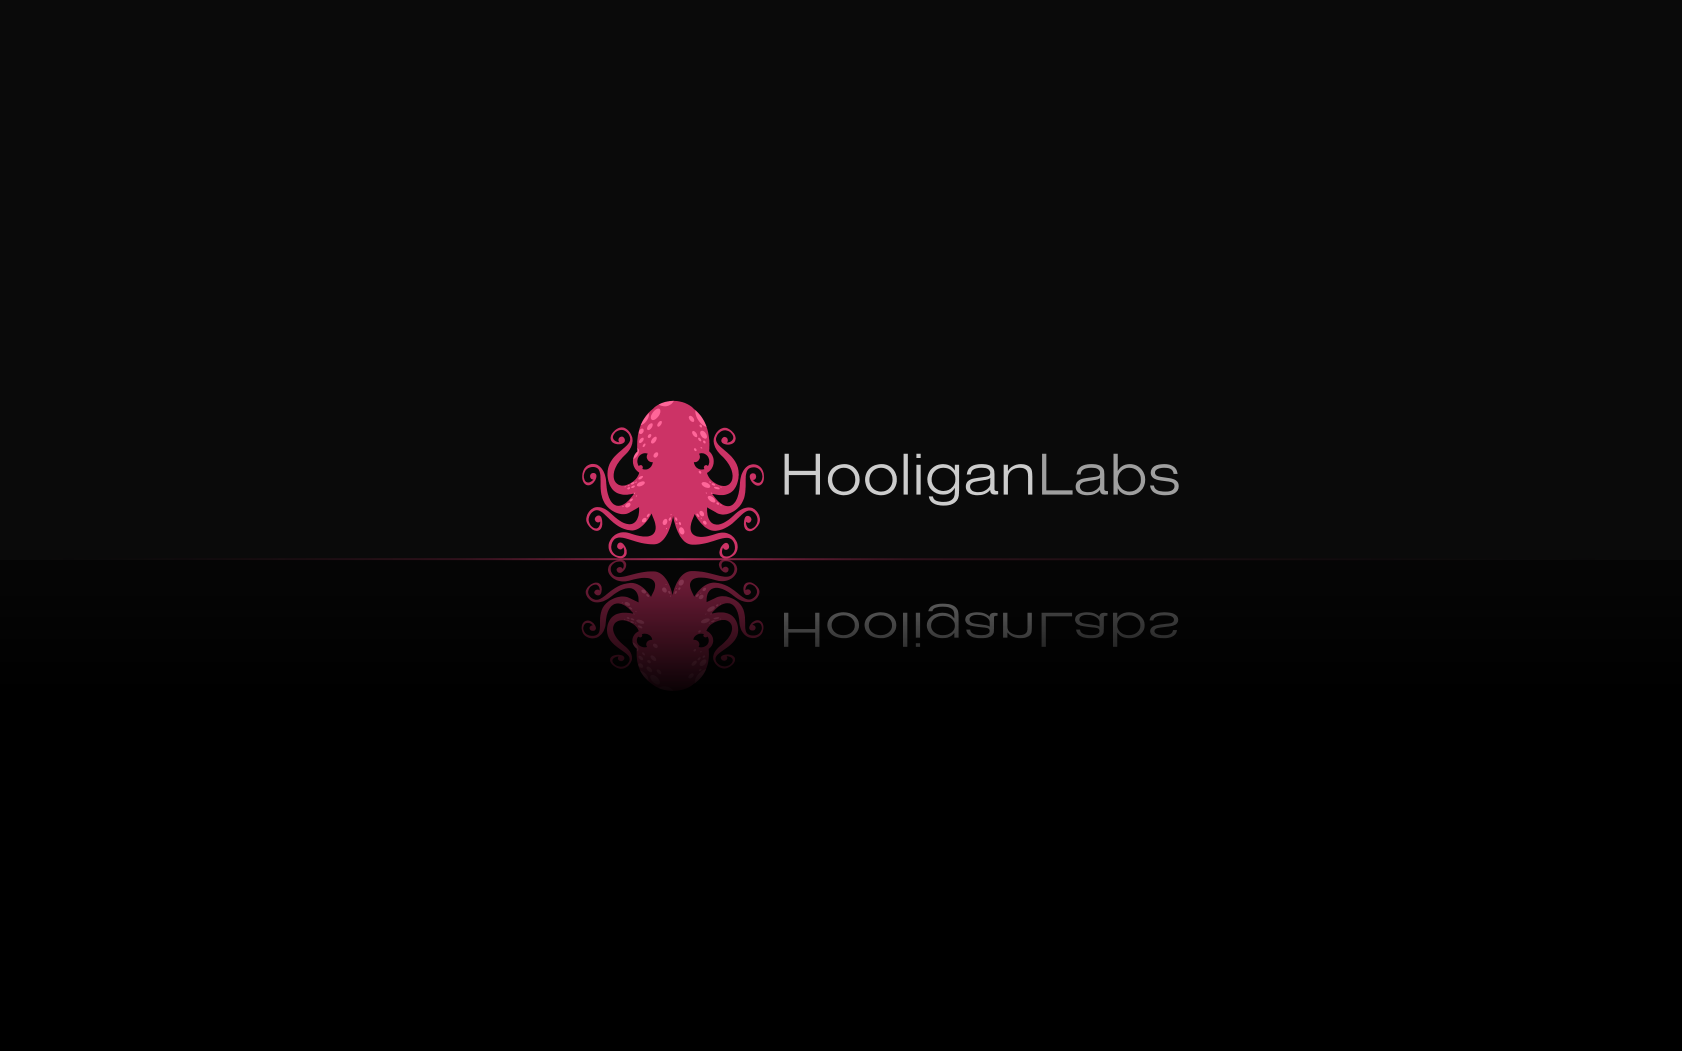 New Hooligan HDQ Wallpapers